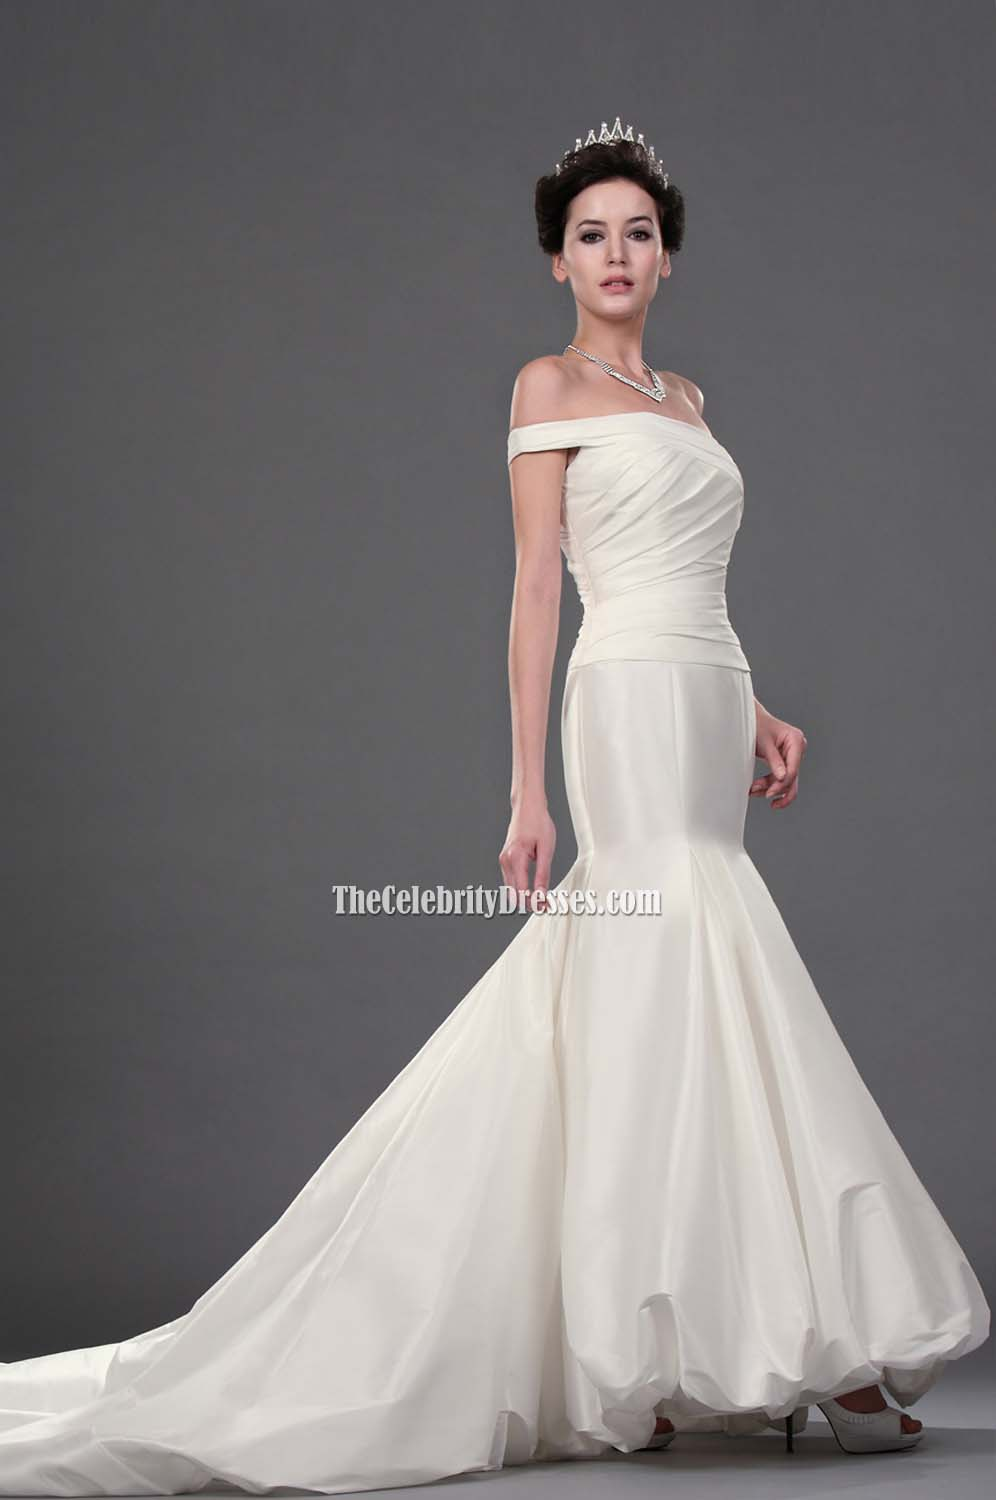 Anne Hathaway Wedding.Anne Hathaway Wedding Gown In Movie Bride Wars Tcd0207